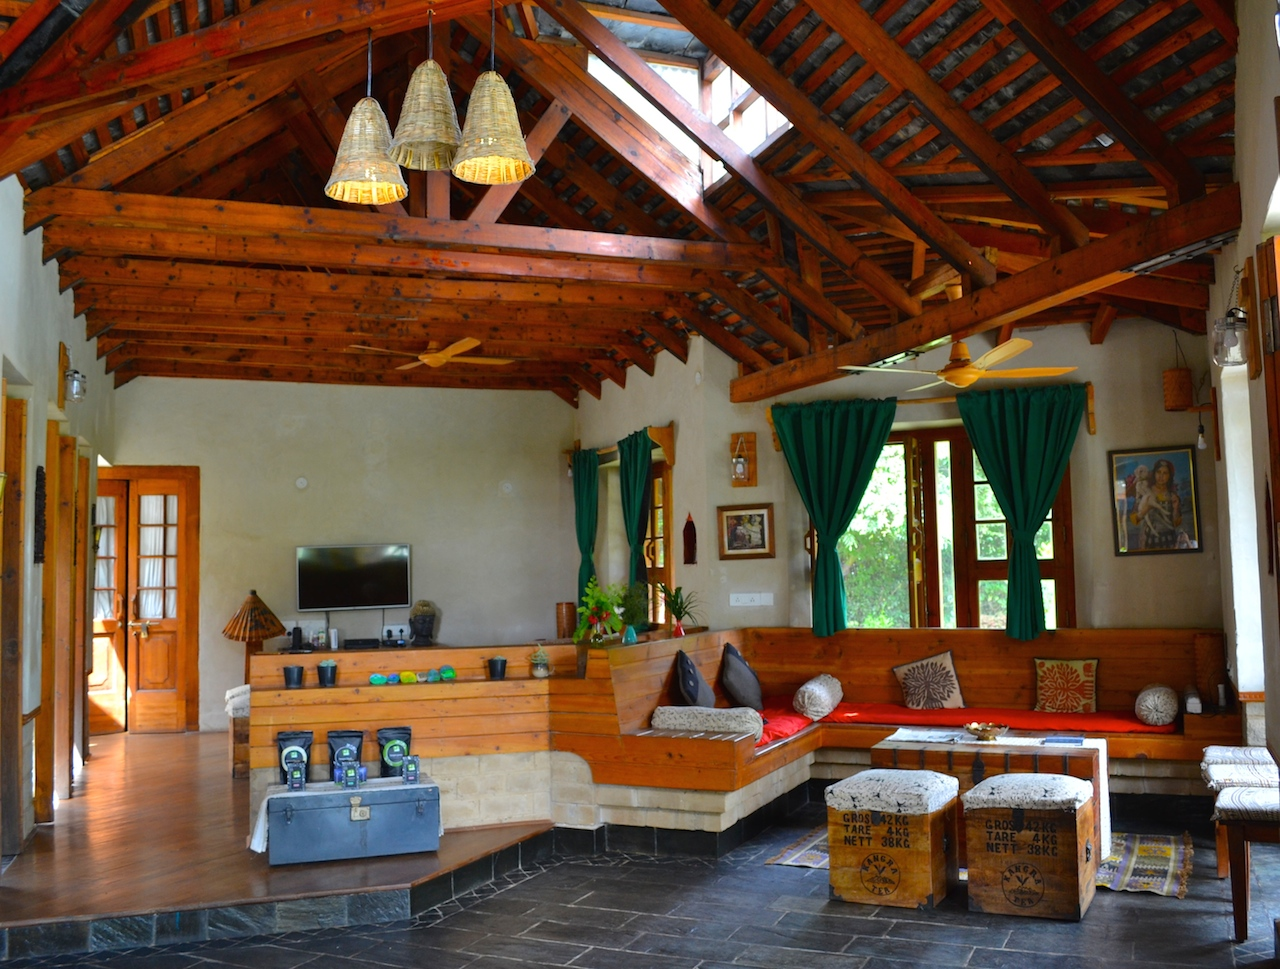 The lounge for guests to relax, read, hang-out.